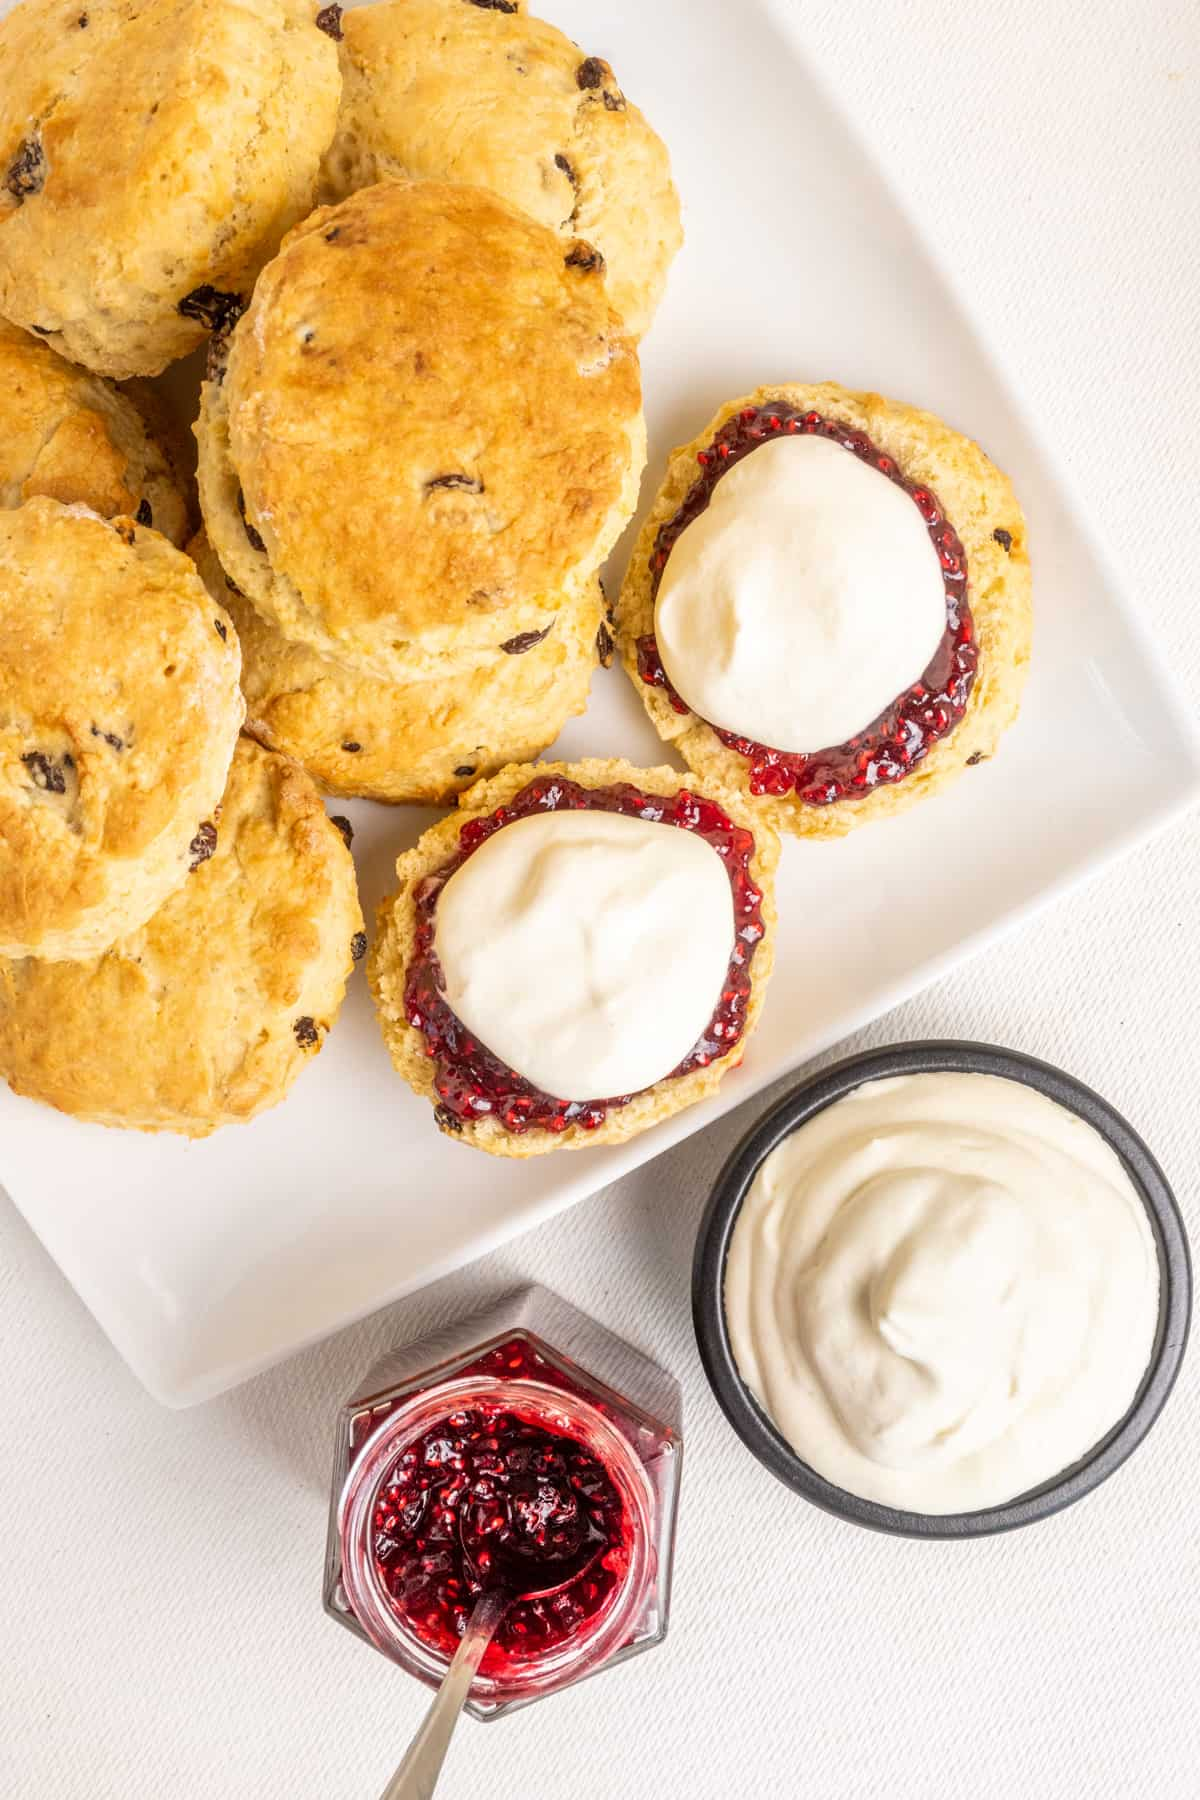 A completely vegan serving of scones, raspberry jam and whipped cream.